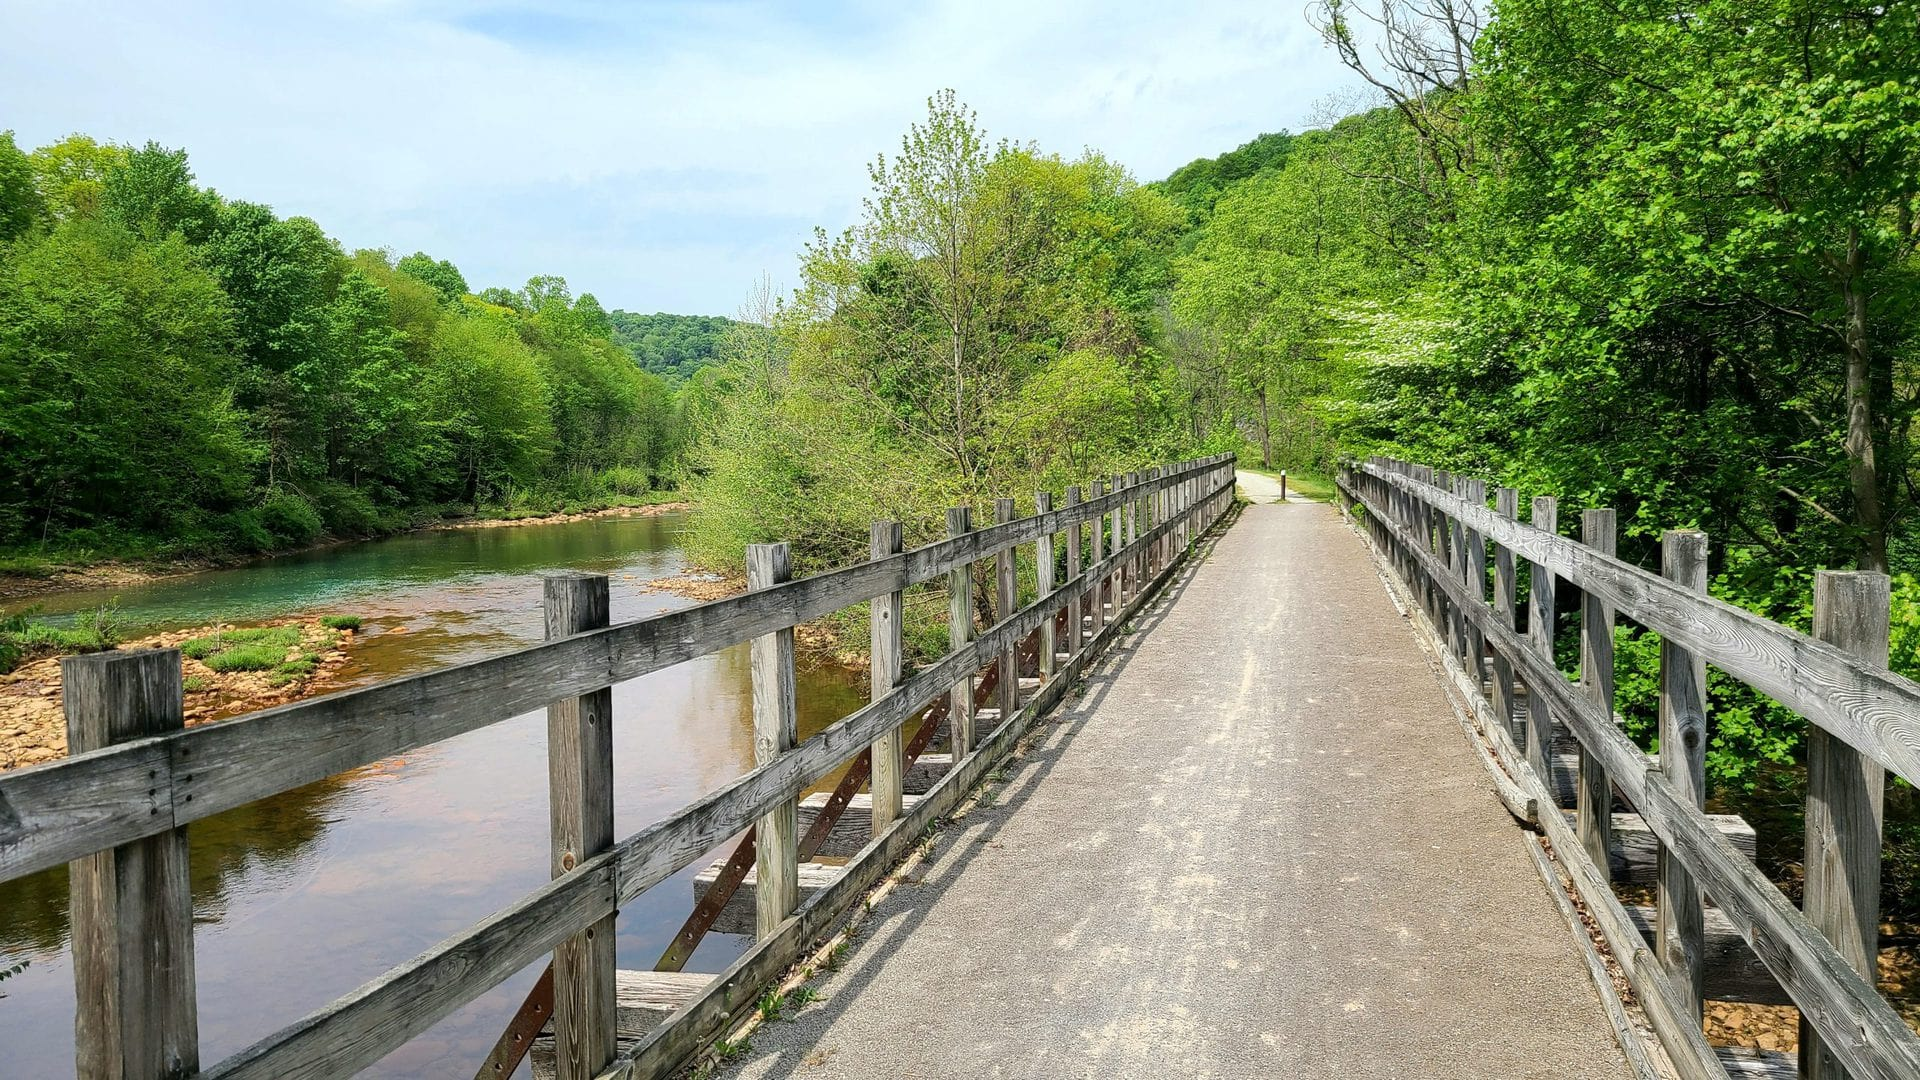 A wooden bridge overlooking Blacklick creek. The trail continues into the distance.